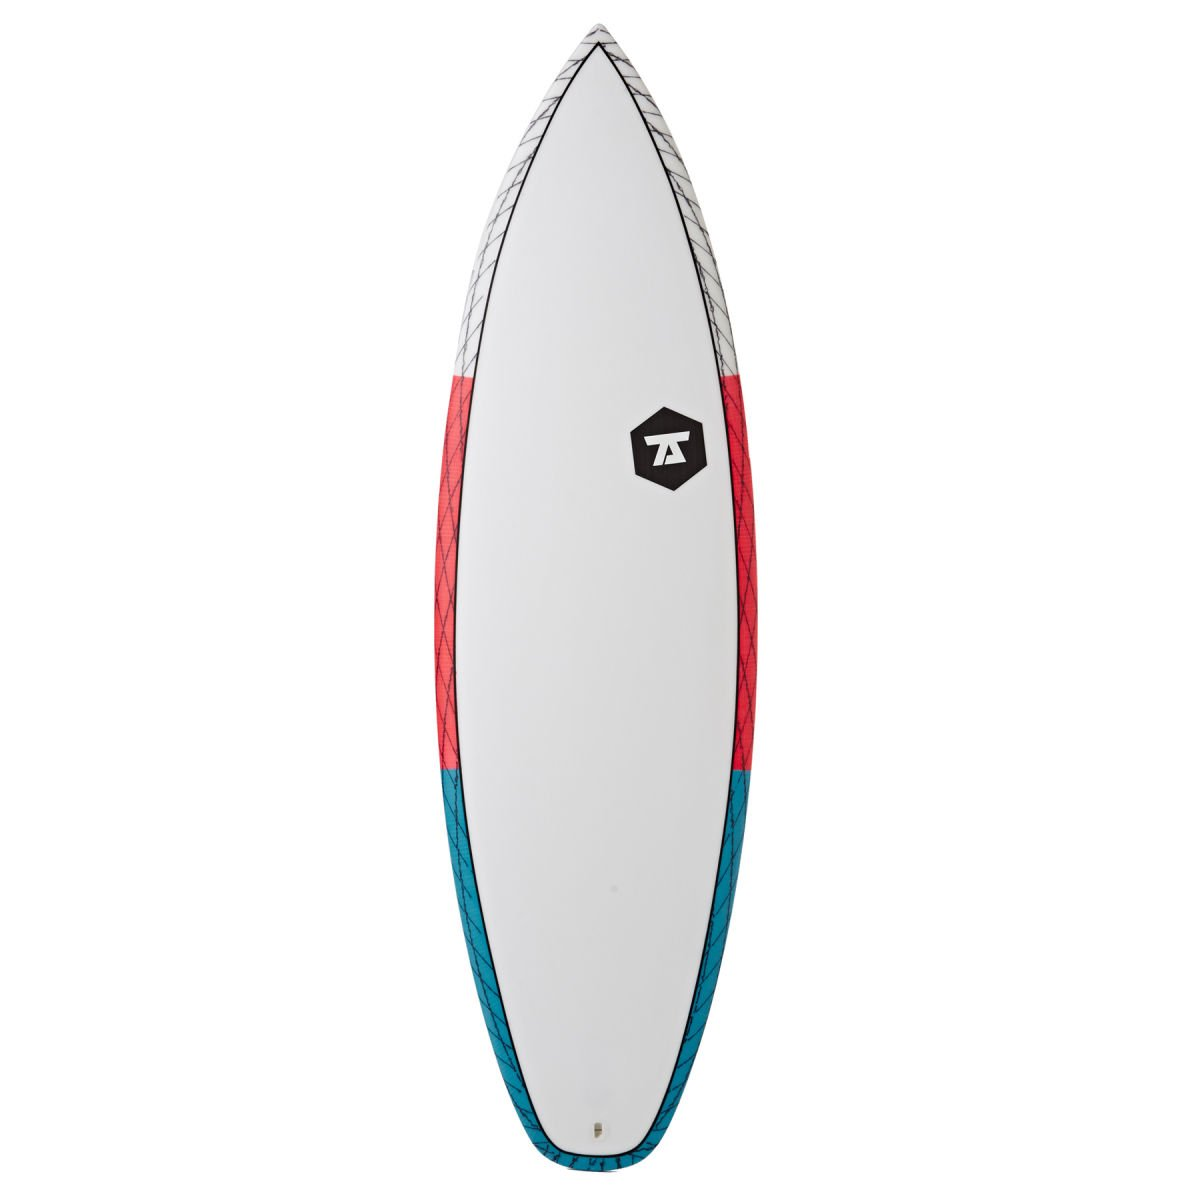 7S Unisex salero carbono Vector tabla de surf, granate: Amazon.es: Deportes y aire libre